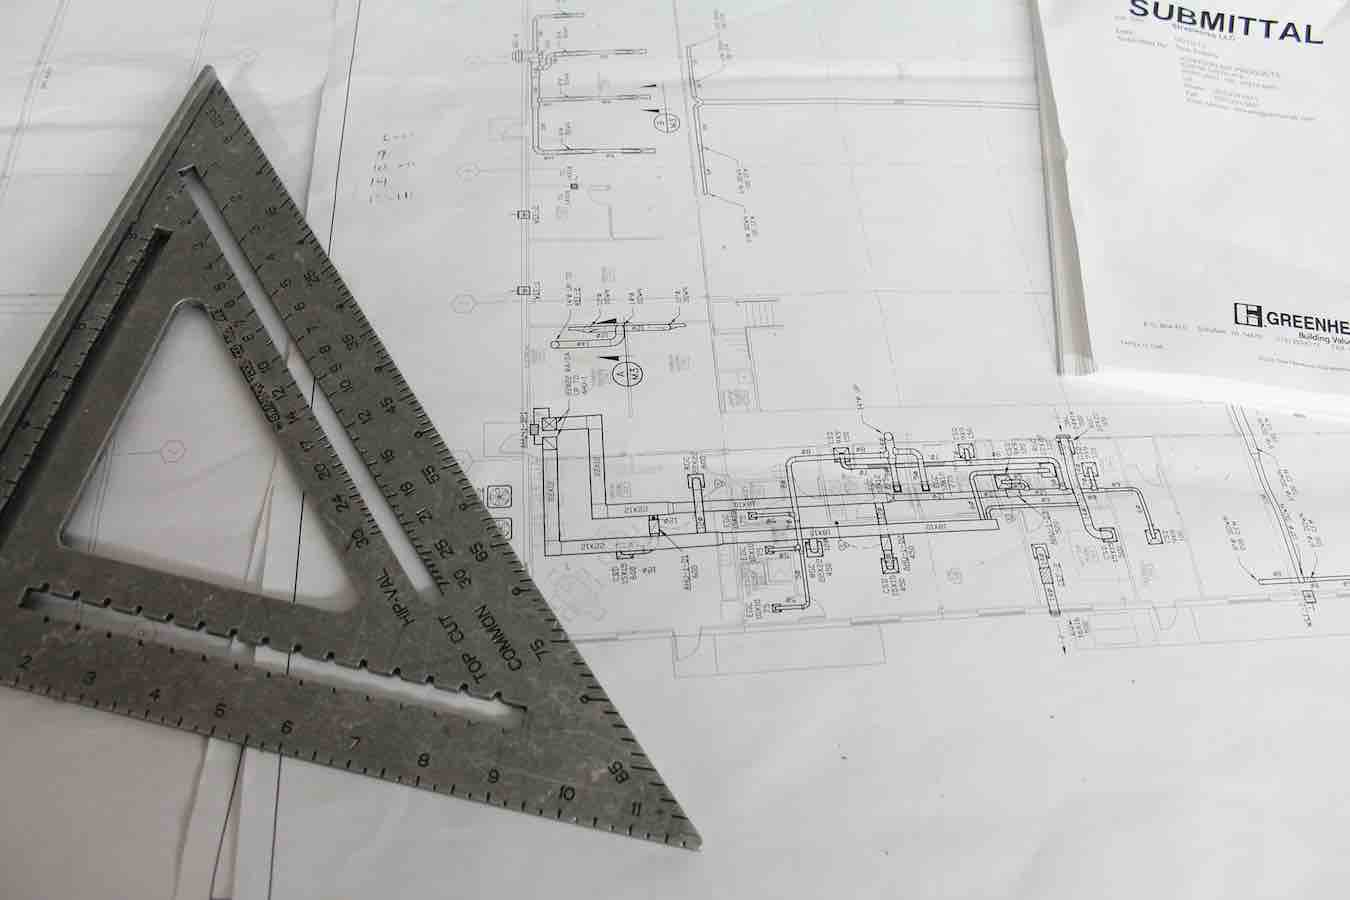 construction drawings with triangle